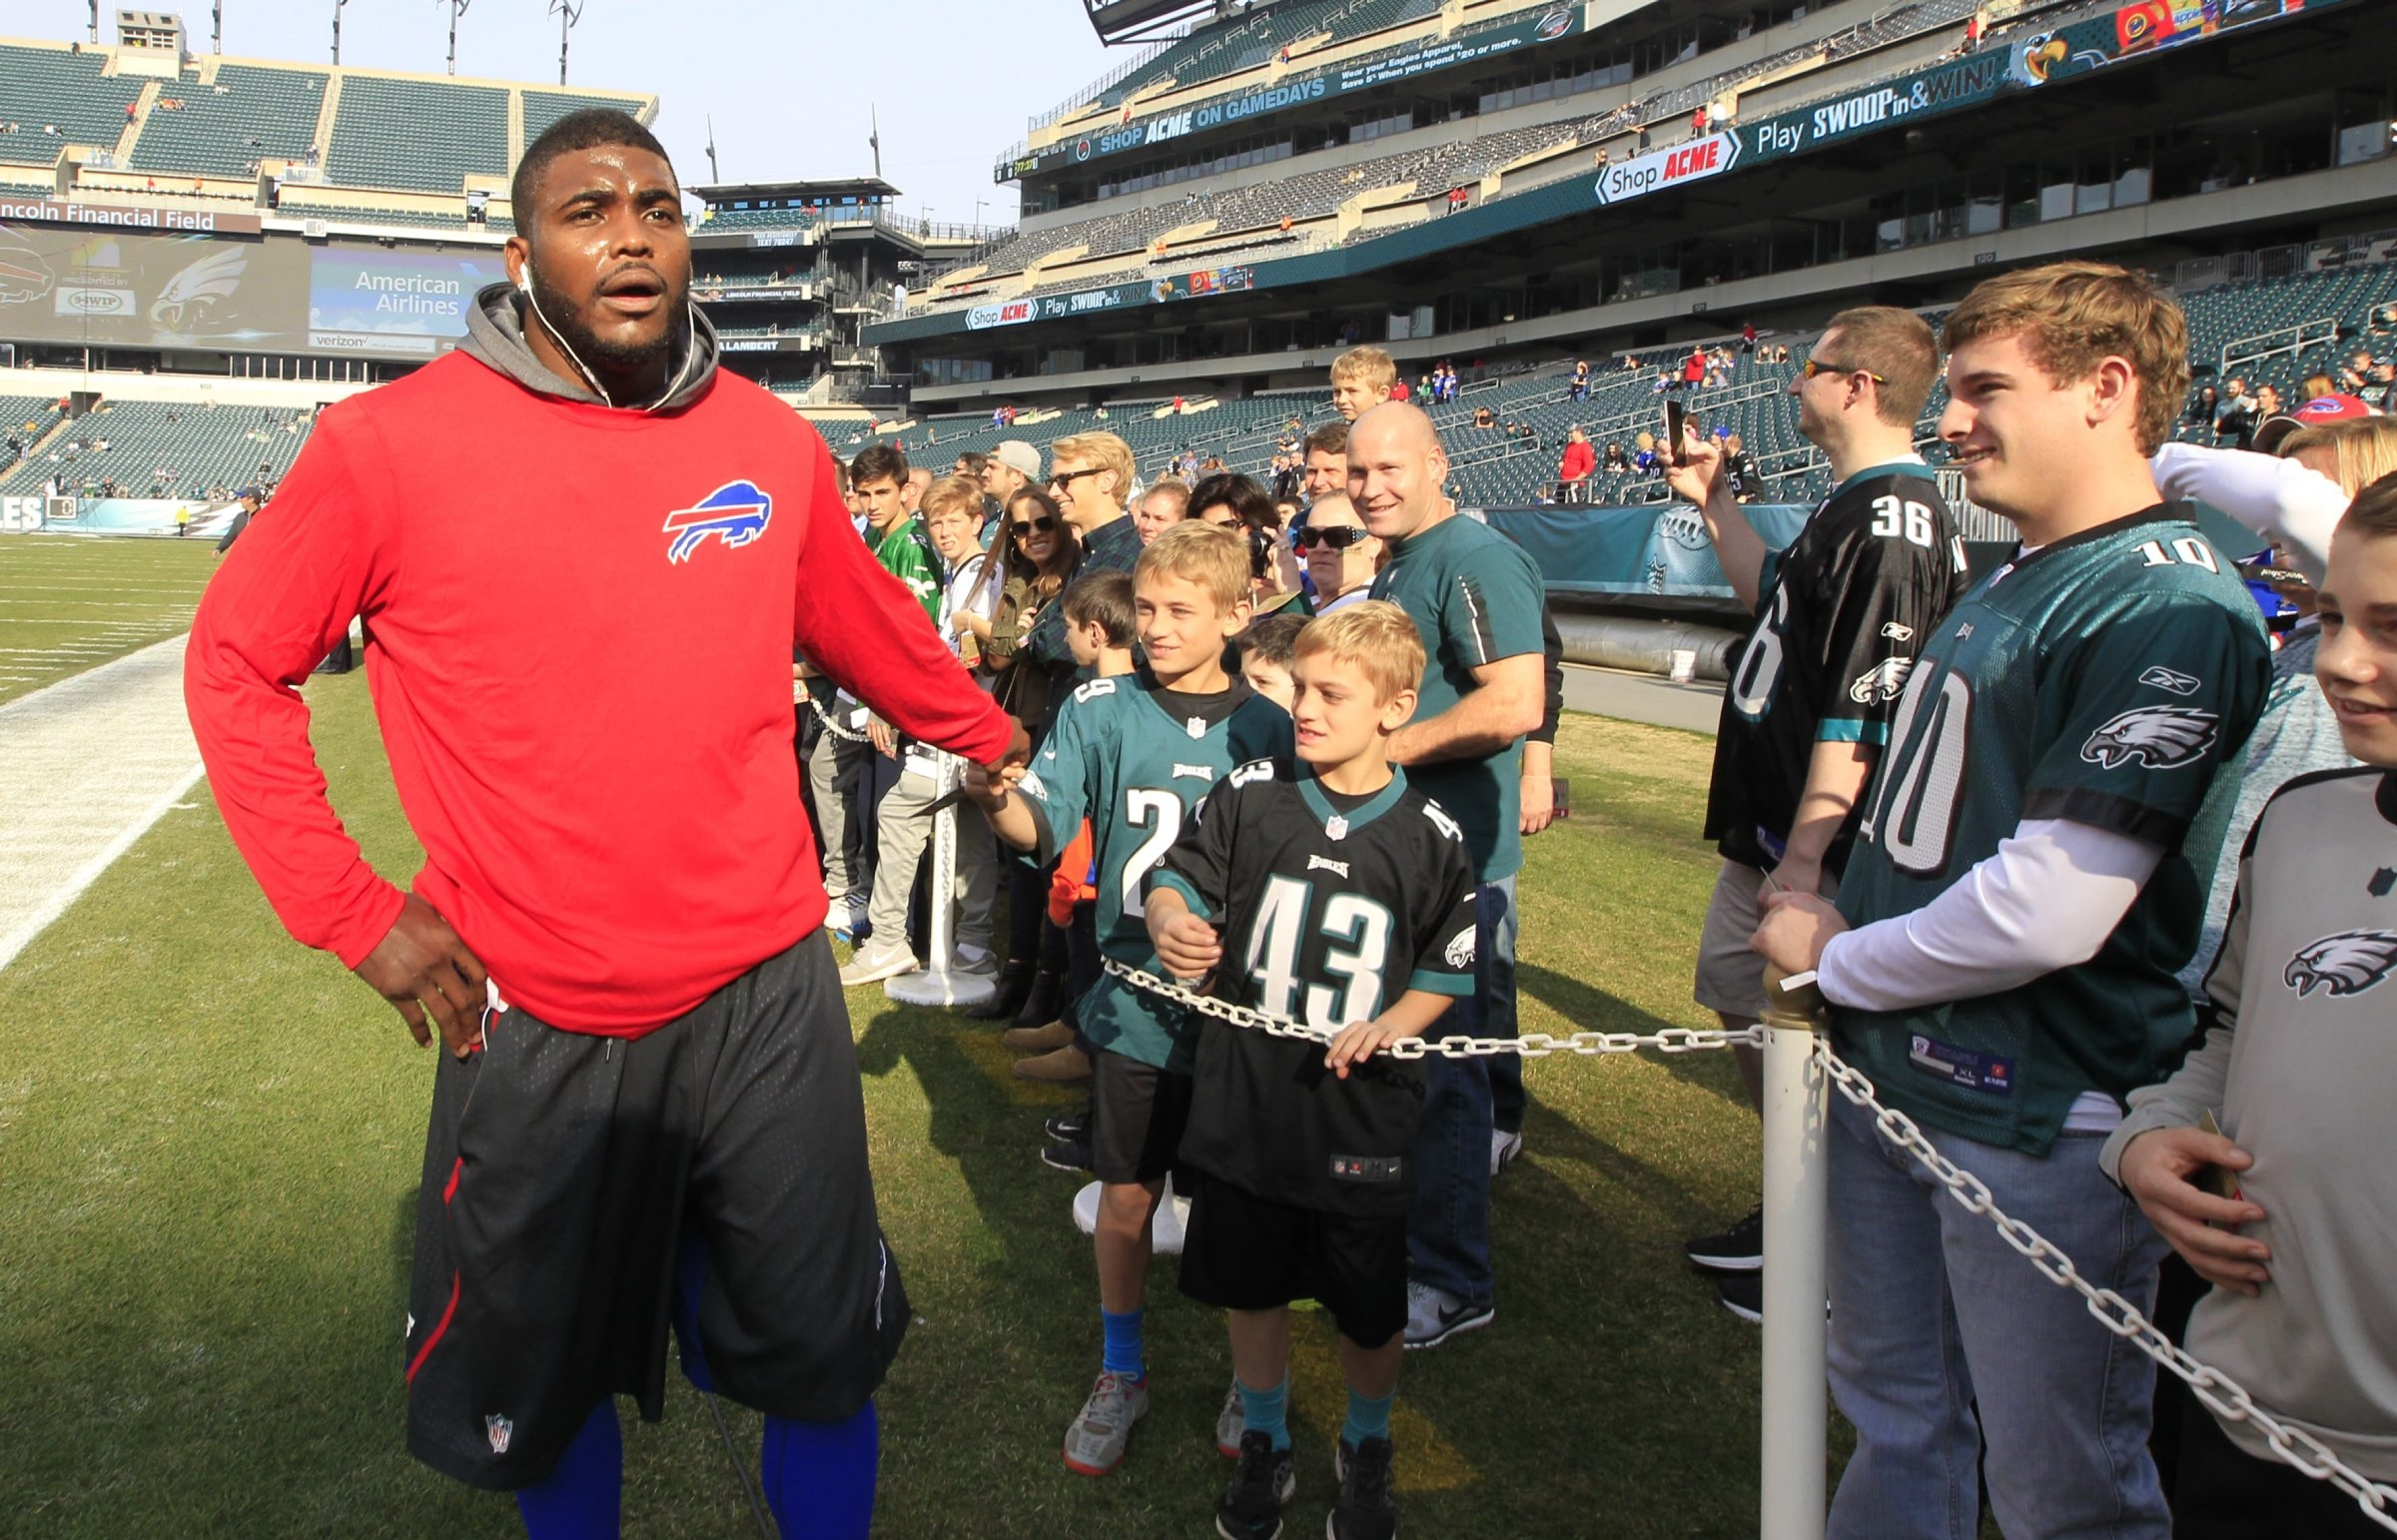 Aaron Williams would like to see teammates Eric Wood, Richie Incognito, Corey Graham, and Tyrod Taylor take leadership roles. with the Bills.    hasn't played since Oct. 11, but      greets Philadelphia Eagle fans at Lincoln Financial Field on Sunday, Dec. 13, 2015.  (He points to other veterans – such as center    – who do their share to help lead at a time when the Bills need it the most.  )